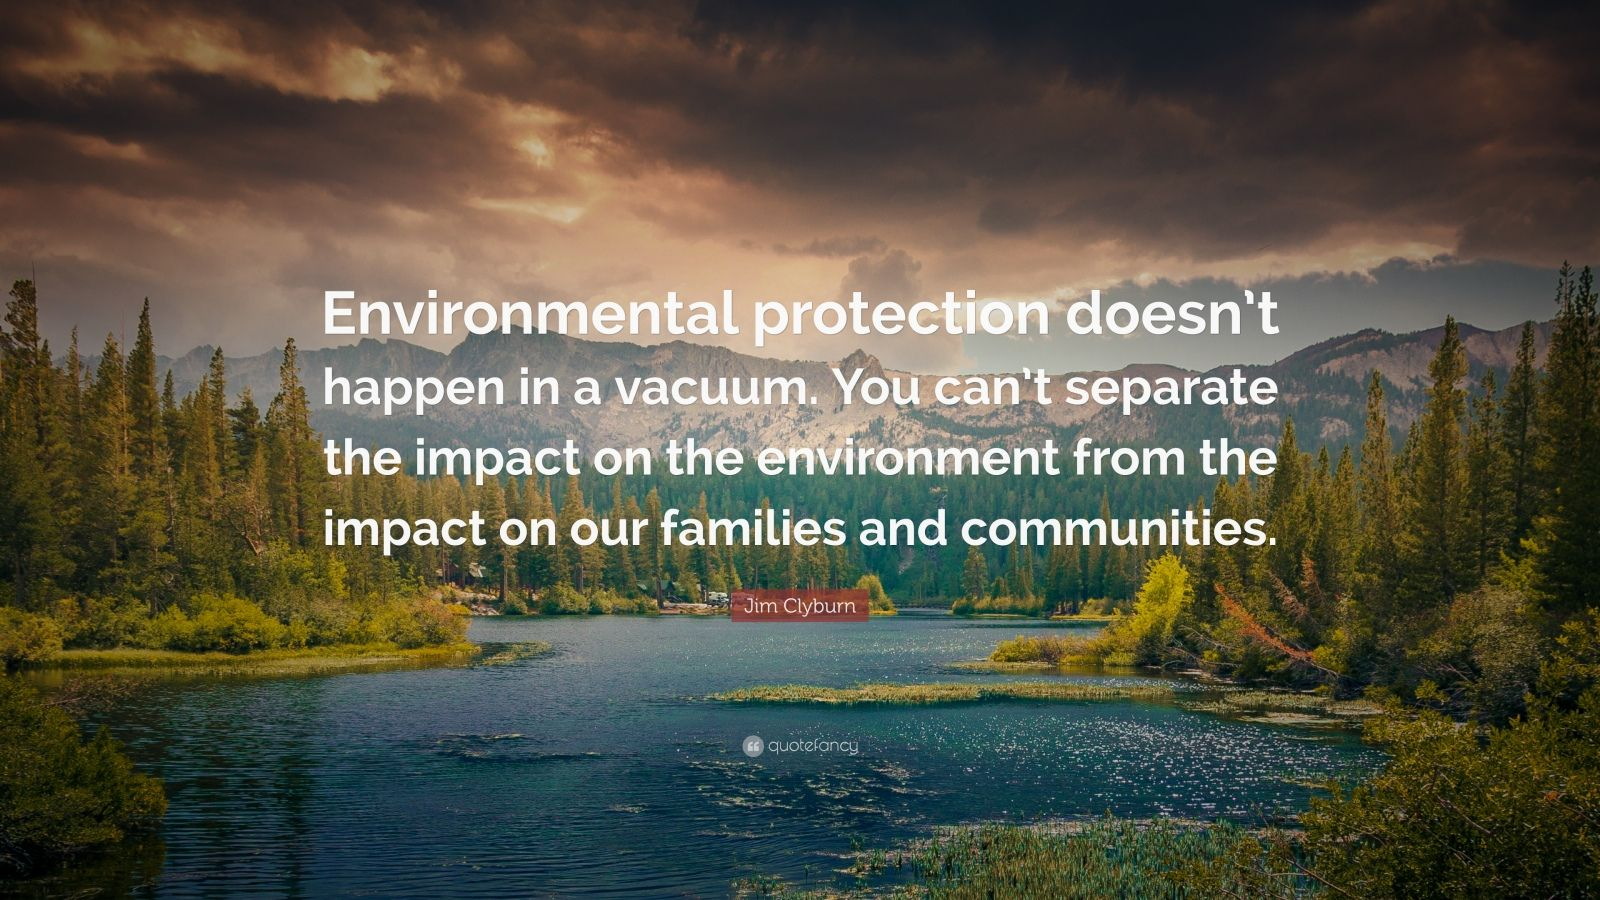 """Jim Clyburn Quote: """"Environmental protection doesn't happen in a vacuum. You can't separate the impact on the environment from the impact on our families and communities."""""""